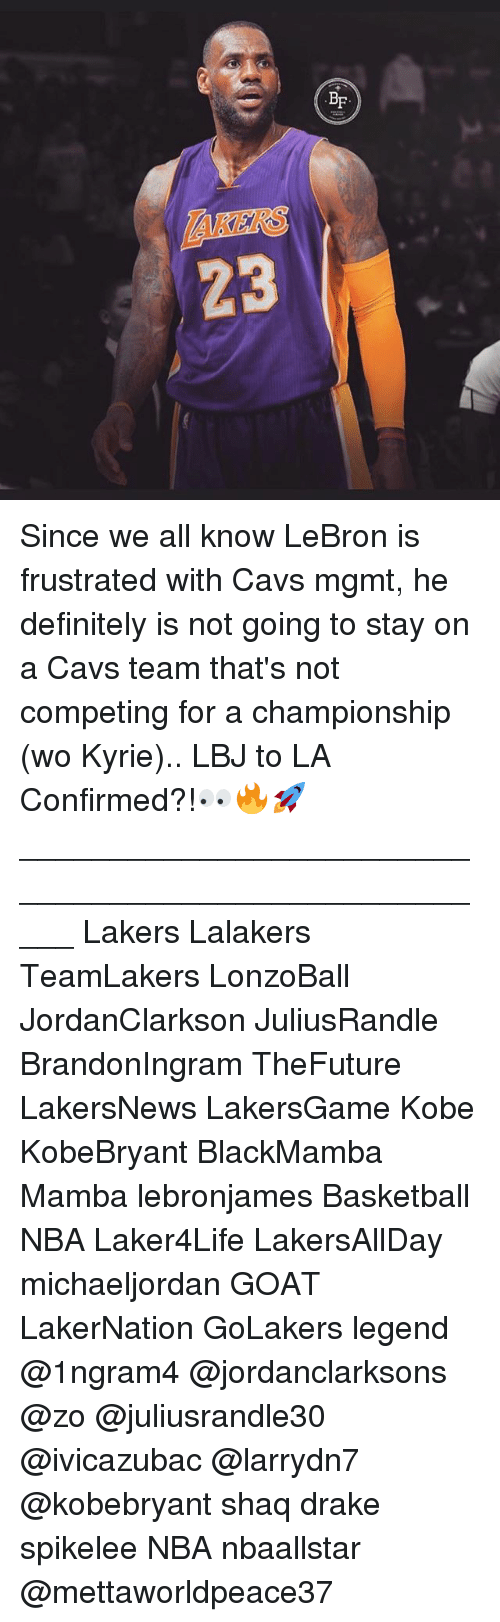 Basketball, Cavs, and Definitely: AKERS  23 Since we all know LeBron is frustrated with Cavs mgmt, he definitely is not going to stay on a Cavs team that's not competing for a championship (wo Kyrie).. LBJ to LA Confirmed?!👀🔥🚀 _____________________________________________________ Lakers Lalakers TeamLakers LonzoBall JordanClarkson JuliusRandle BrandonIngram TheFuture LakersNews LakersGame Kobe KobeBryant BlackMamba Mamba lebronjames Basketball NBA Laker4Life LakersAllDay michaeljordan GOAT LakerNation GoLakers legend @1ngram4 @jordanclarksons @zo @juliusrandle30 @ivicazubac @larrydn7 @kobebryant shaq drake spikelee NBA nbaallstar @mettaworldpeace37